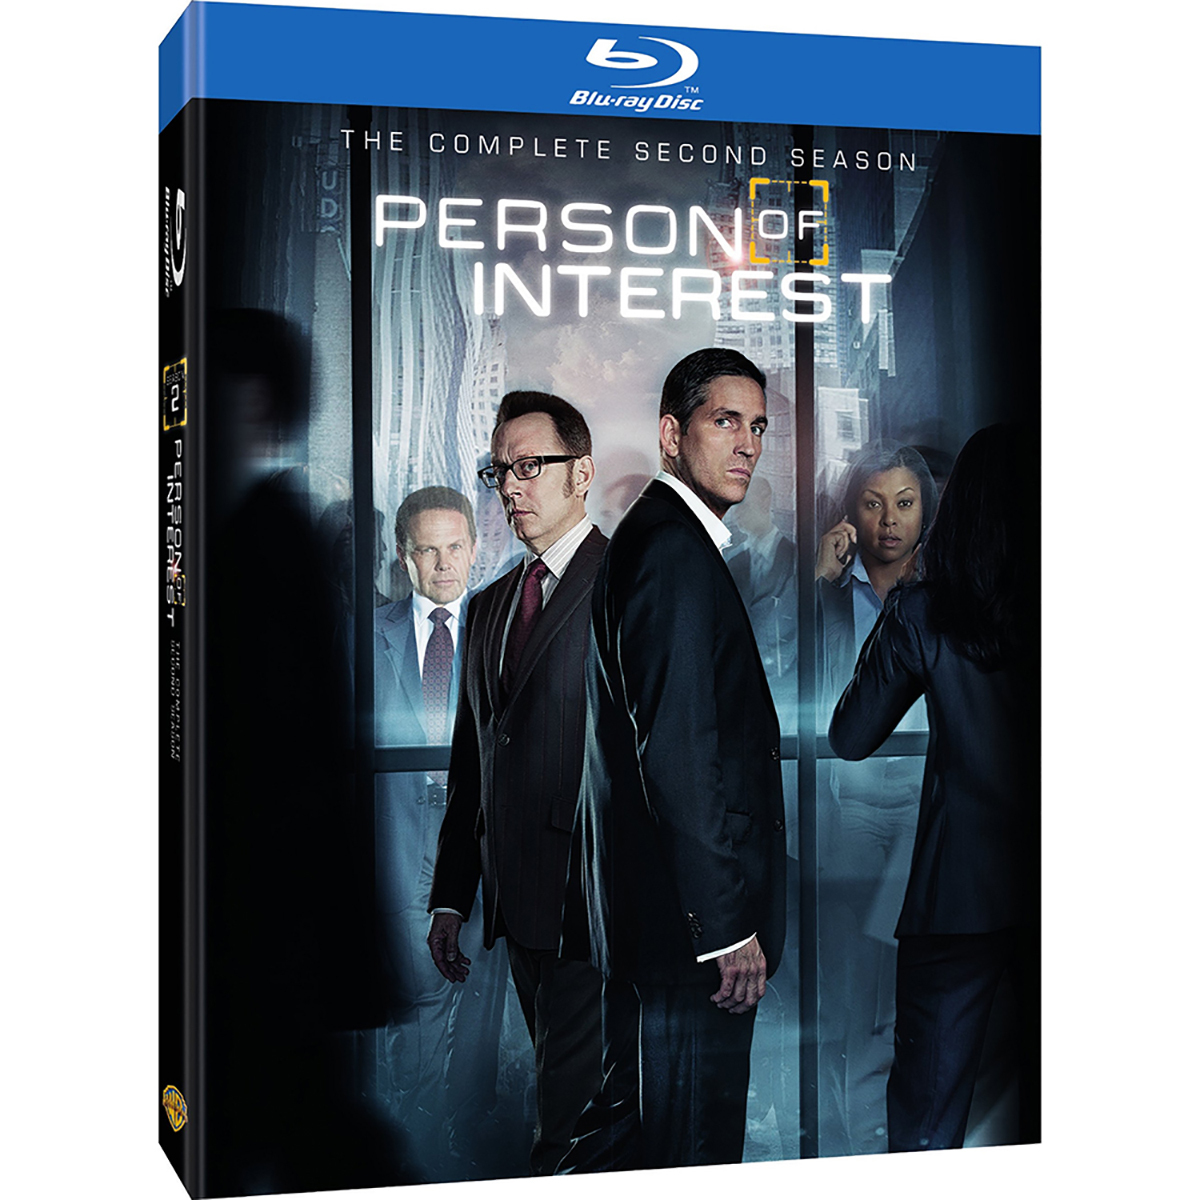 Person Of Interest: Season 2 Blu-ray -  DVDs & Videos 6445-512730